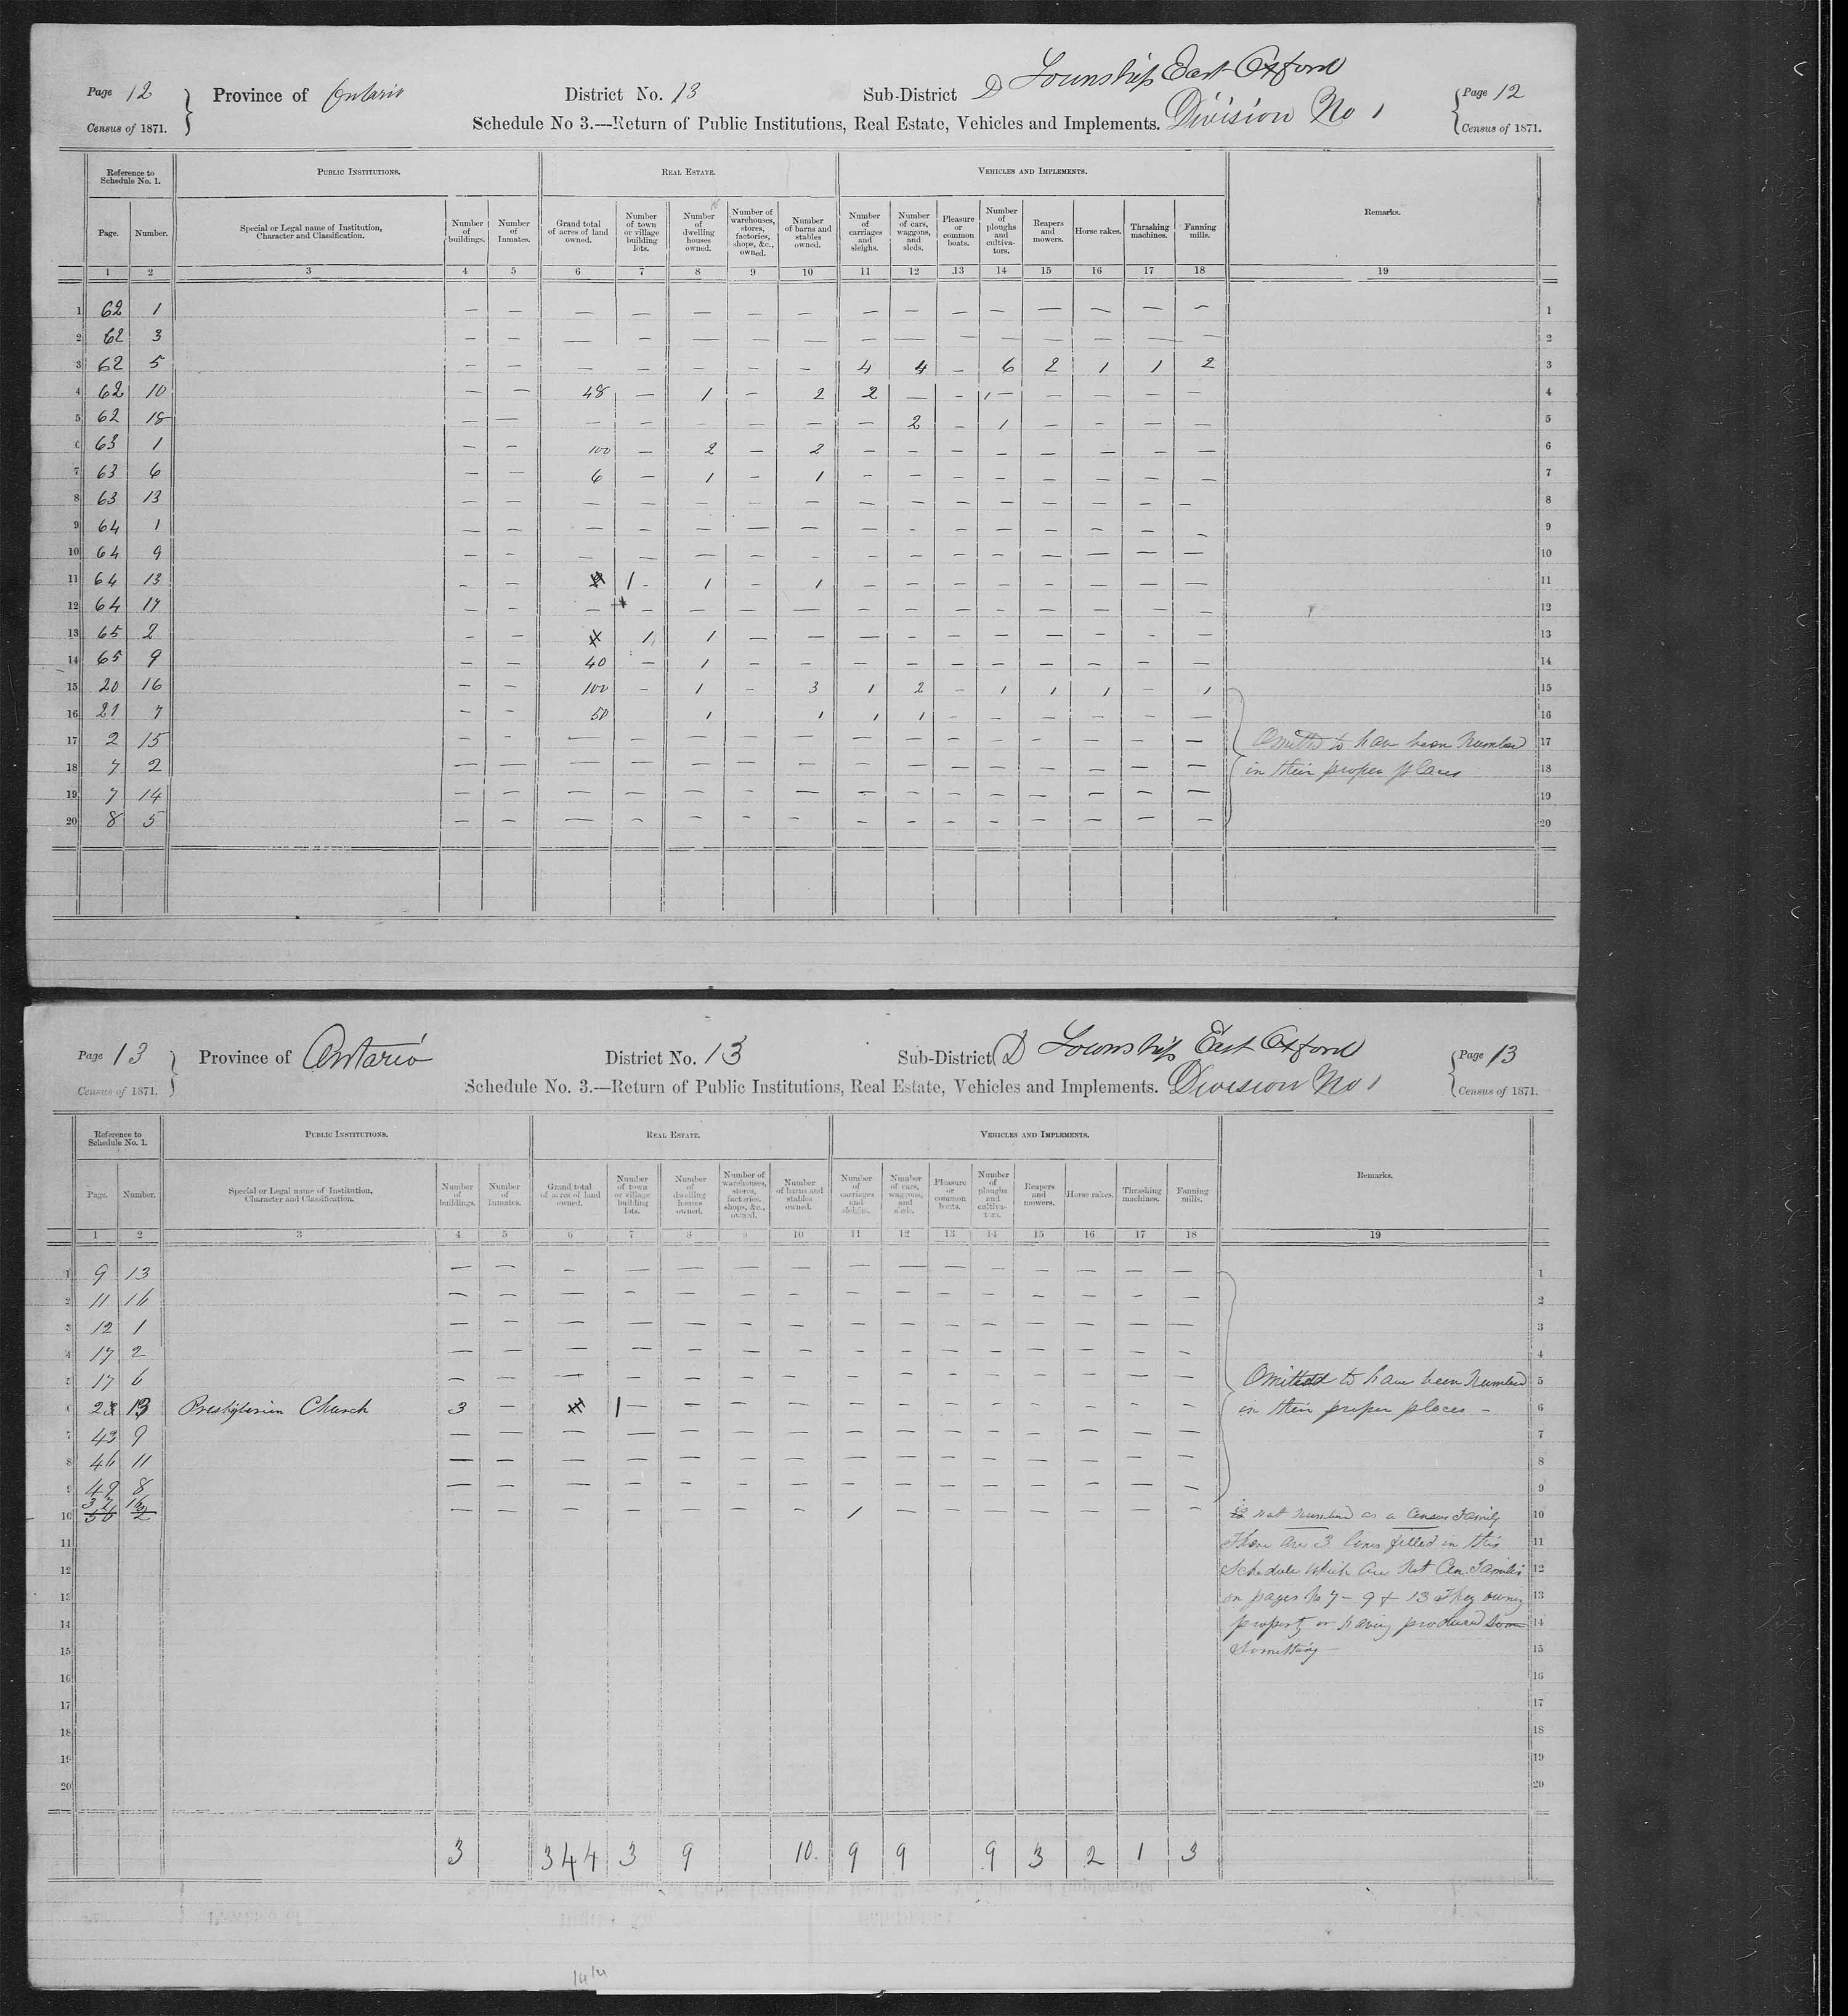 Title: Census of Canada, 1871 - Mikan Number: 142105 - Microform: c-9911